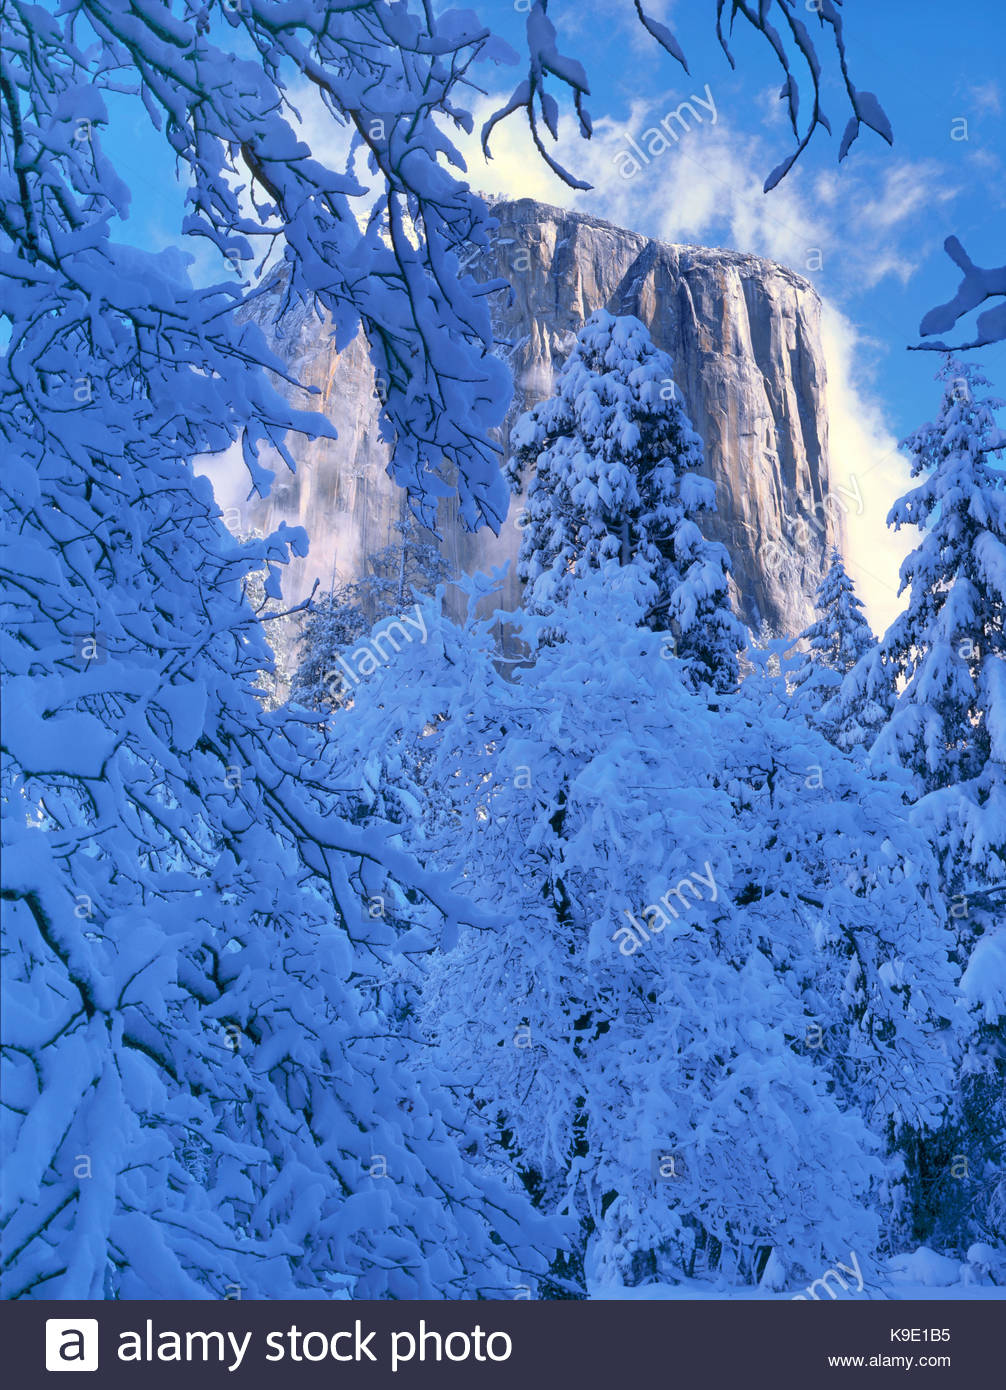 El Capitan after Snowstorm, Yosemite National Park, California - Stock Image